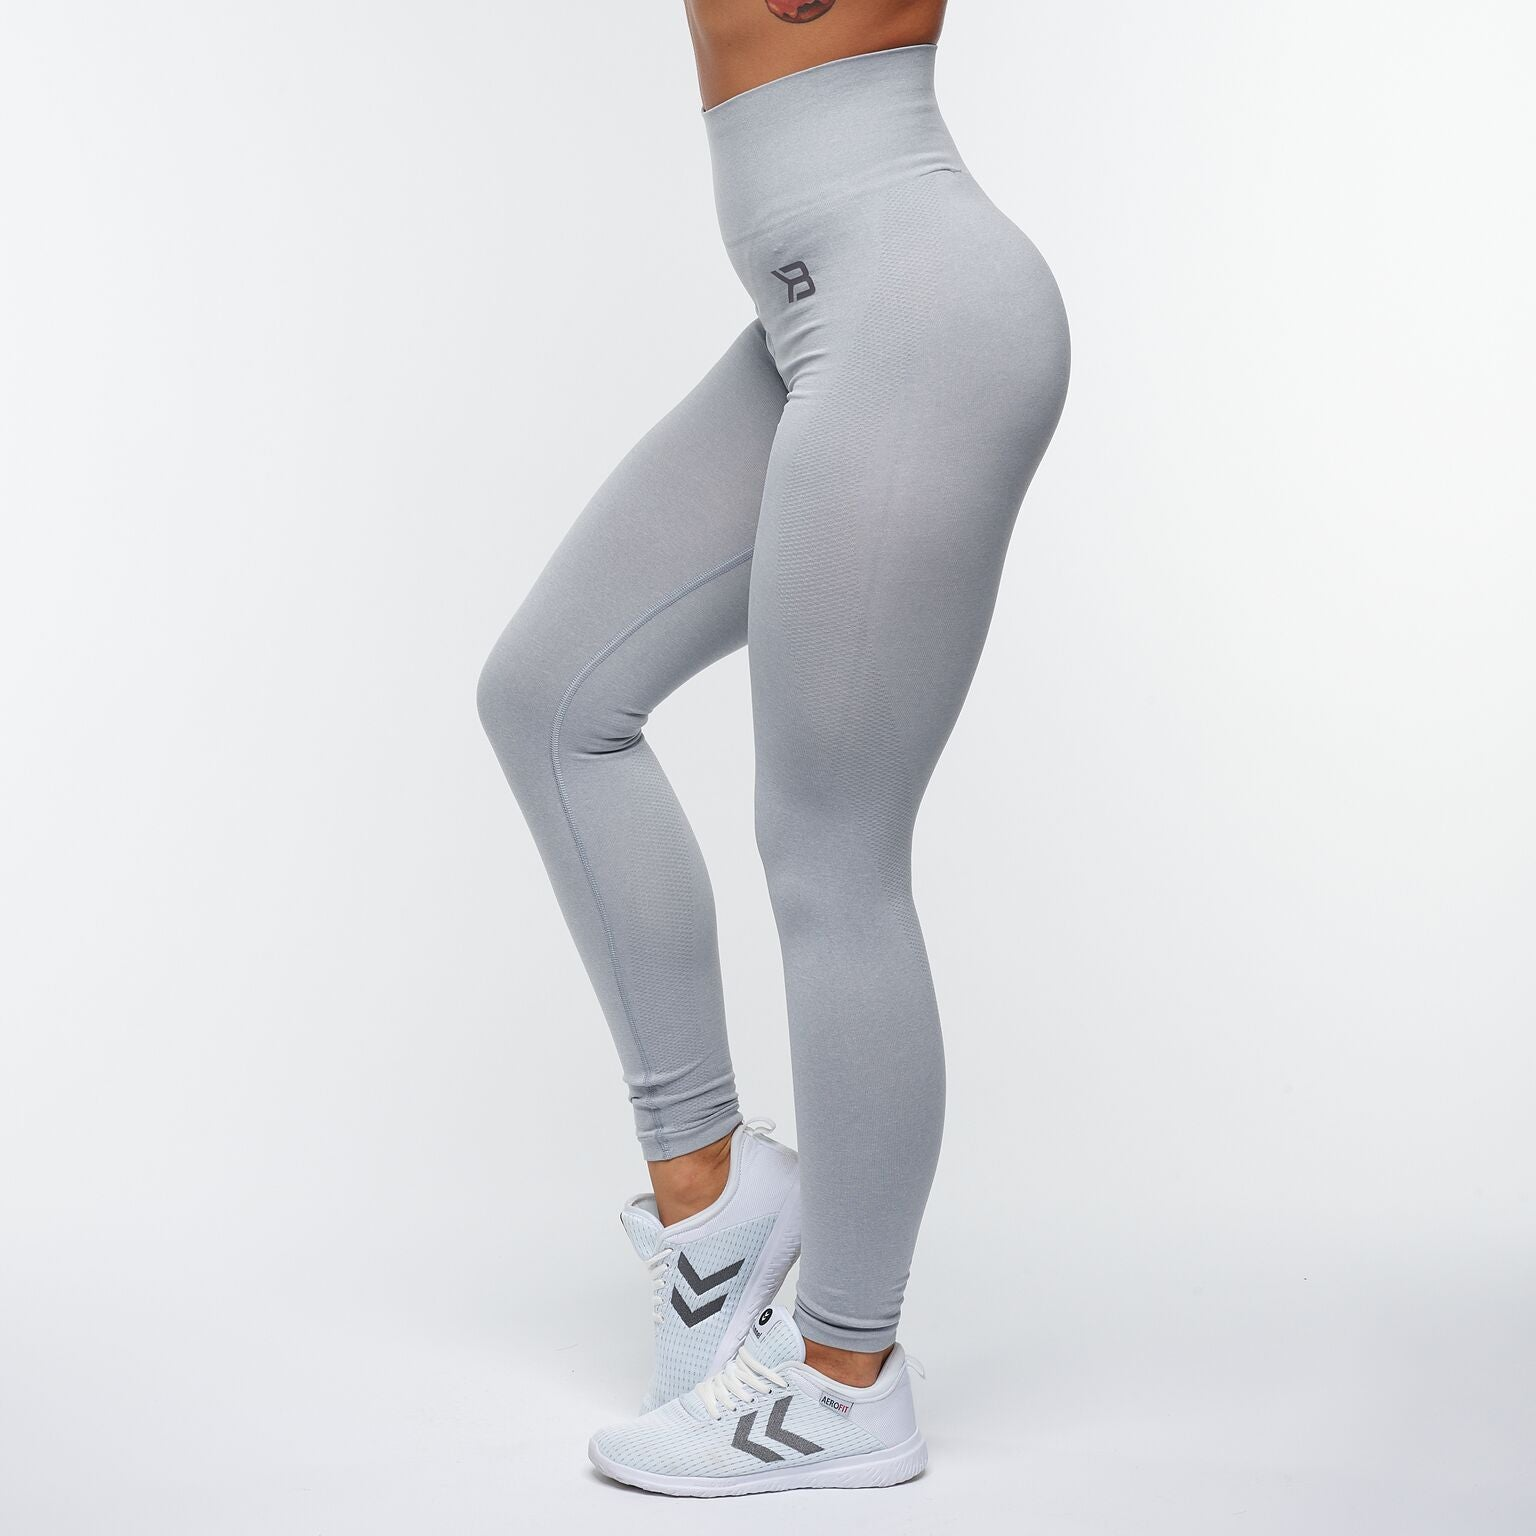 BETTER BODIES – ROCKAWAY TIGHTS LIGHT GREY